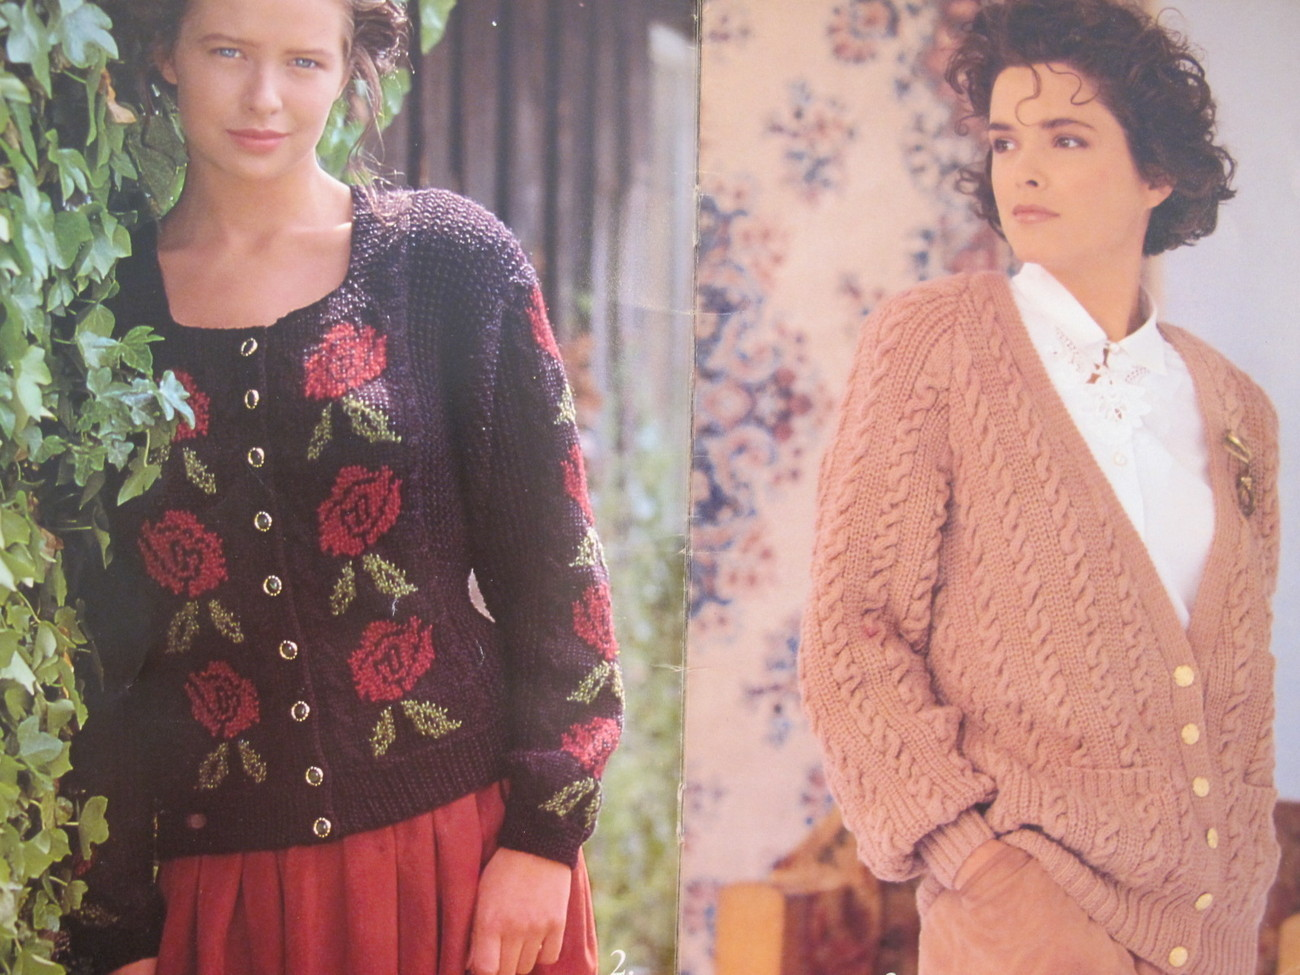 Vintage Patons Knitting Patterns Cardigan Sweaters ADULTS Ladies Small Med Large